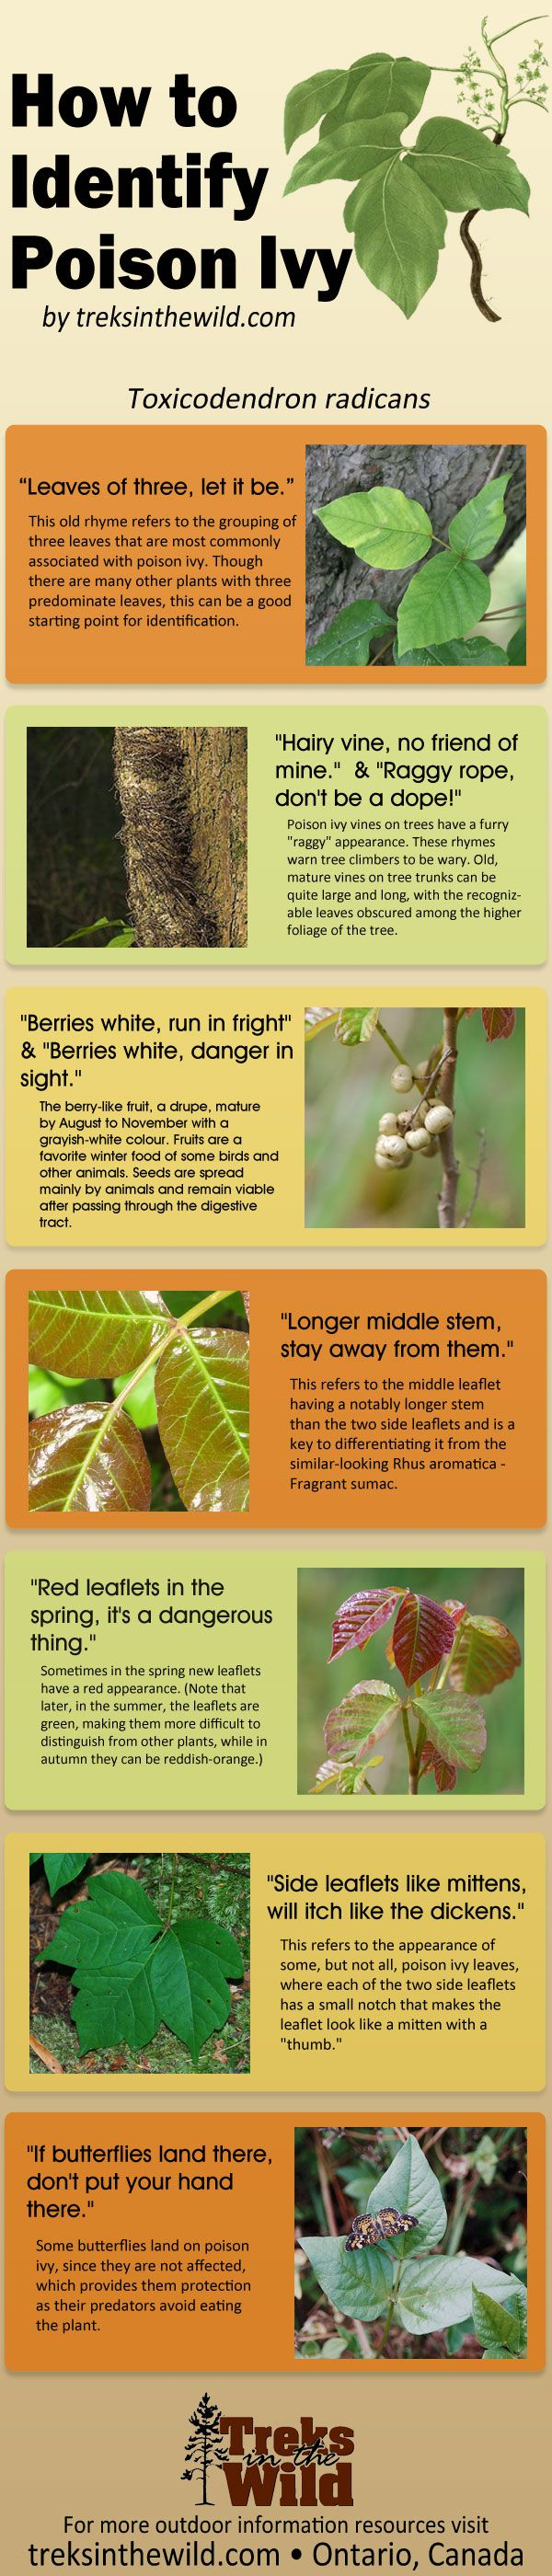 Brush up on your Poison Ivy identification skills with this great infographic!